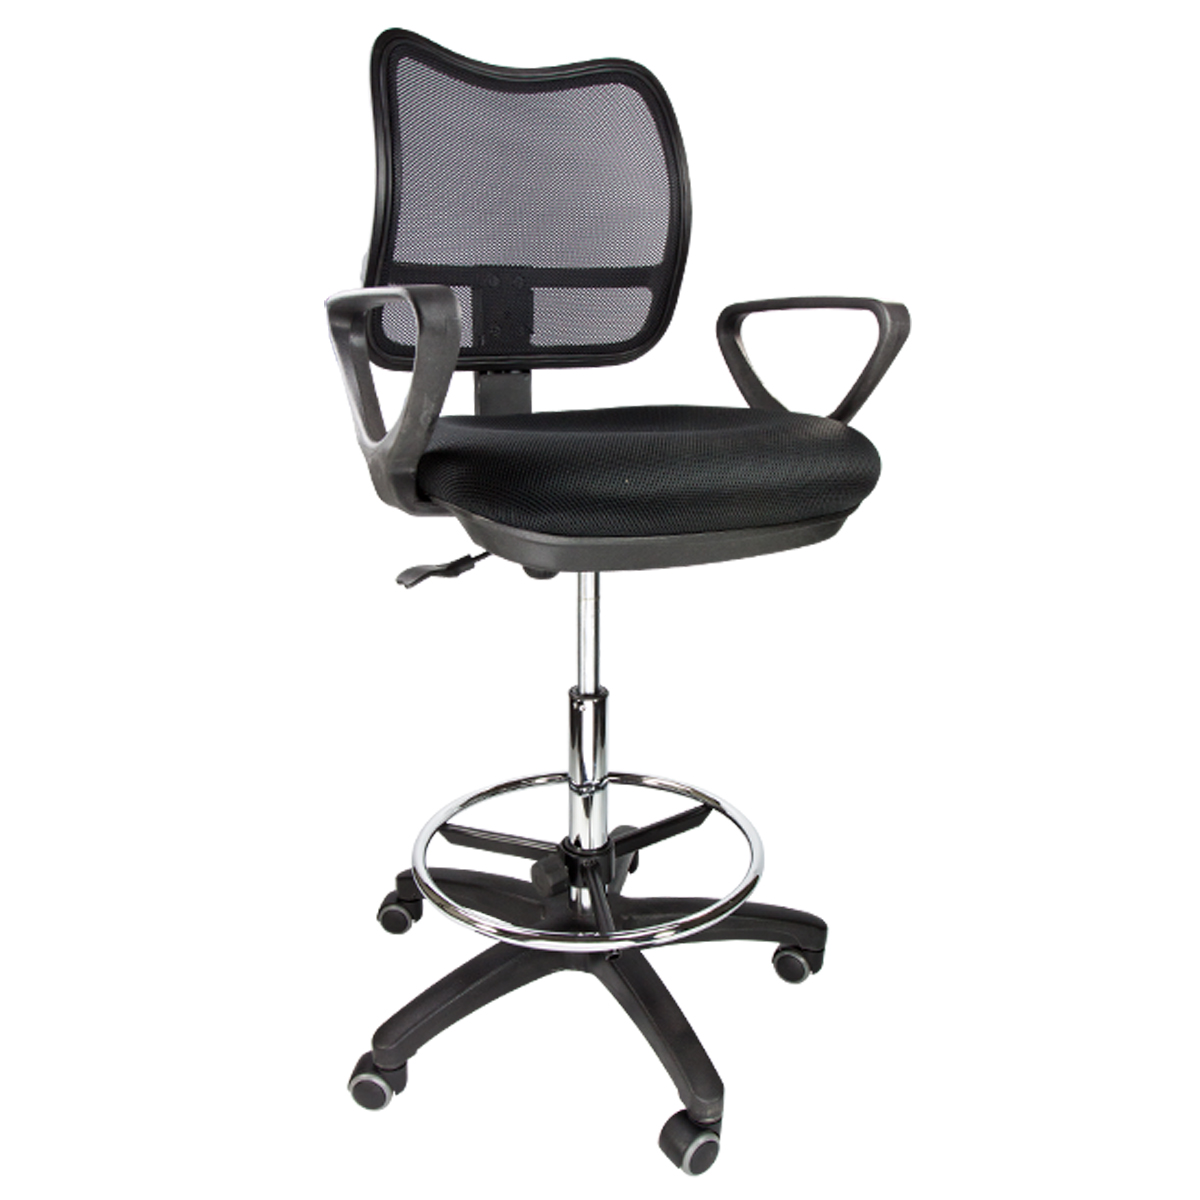 Drafting Chair Stool Armrest Ergonomic Mesh Adjustable Footring Arm Bank  Office   Walmart comDrafting Chair Stool Armrest Ergonomic Mesh Adjustable Footring  . Office Star Height Adjustable Drafting Chair With Footring. Home Design Ideas